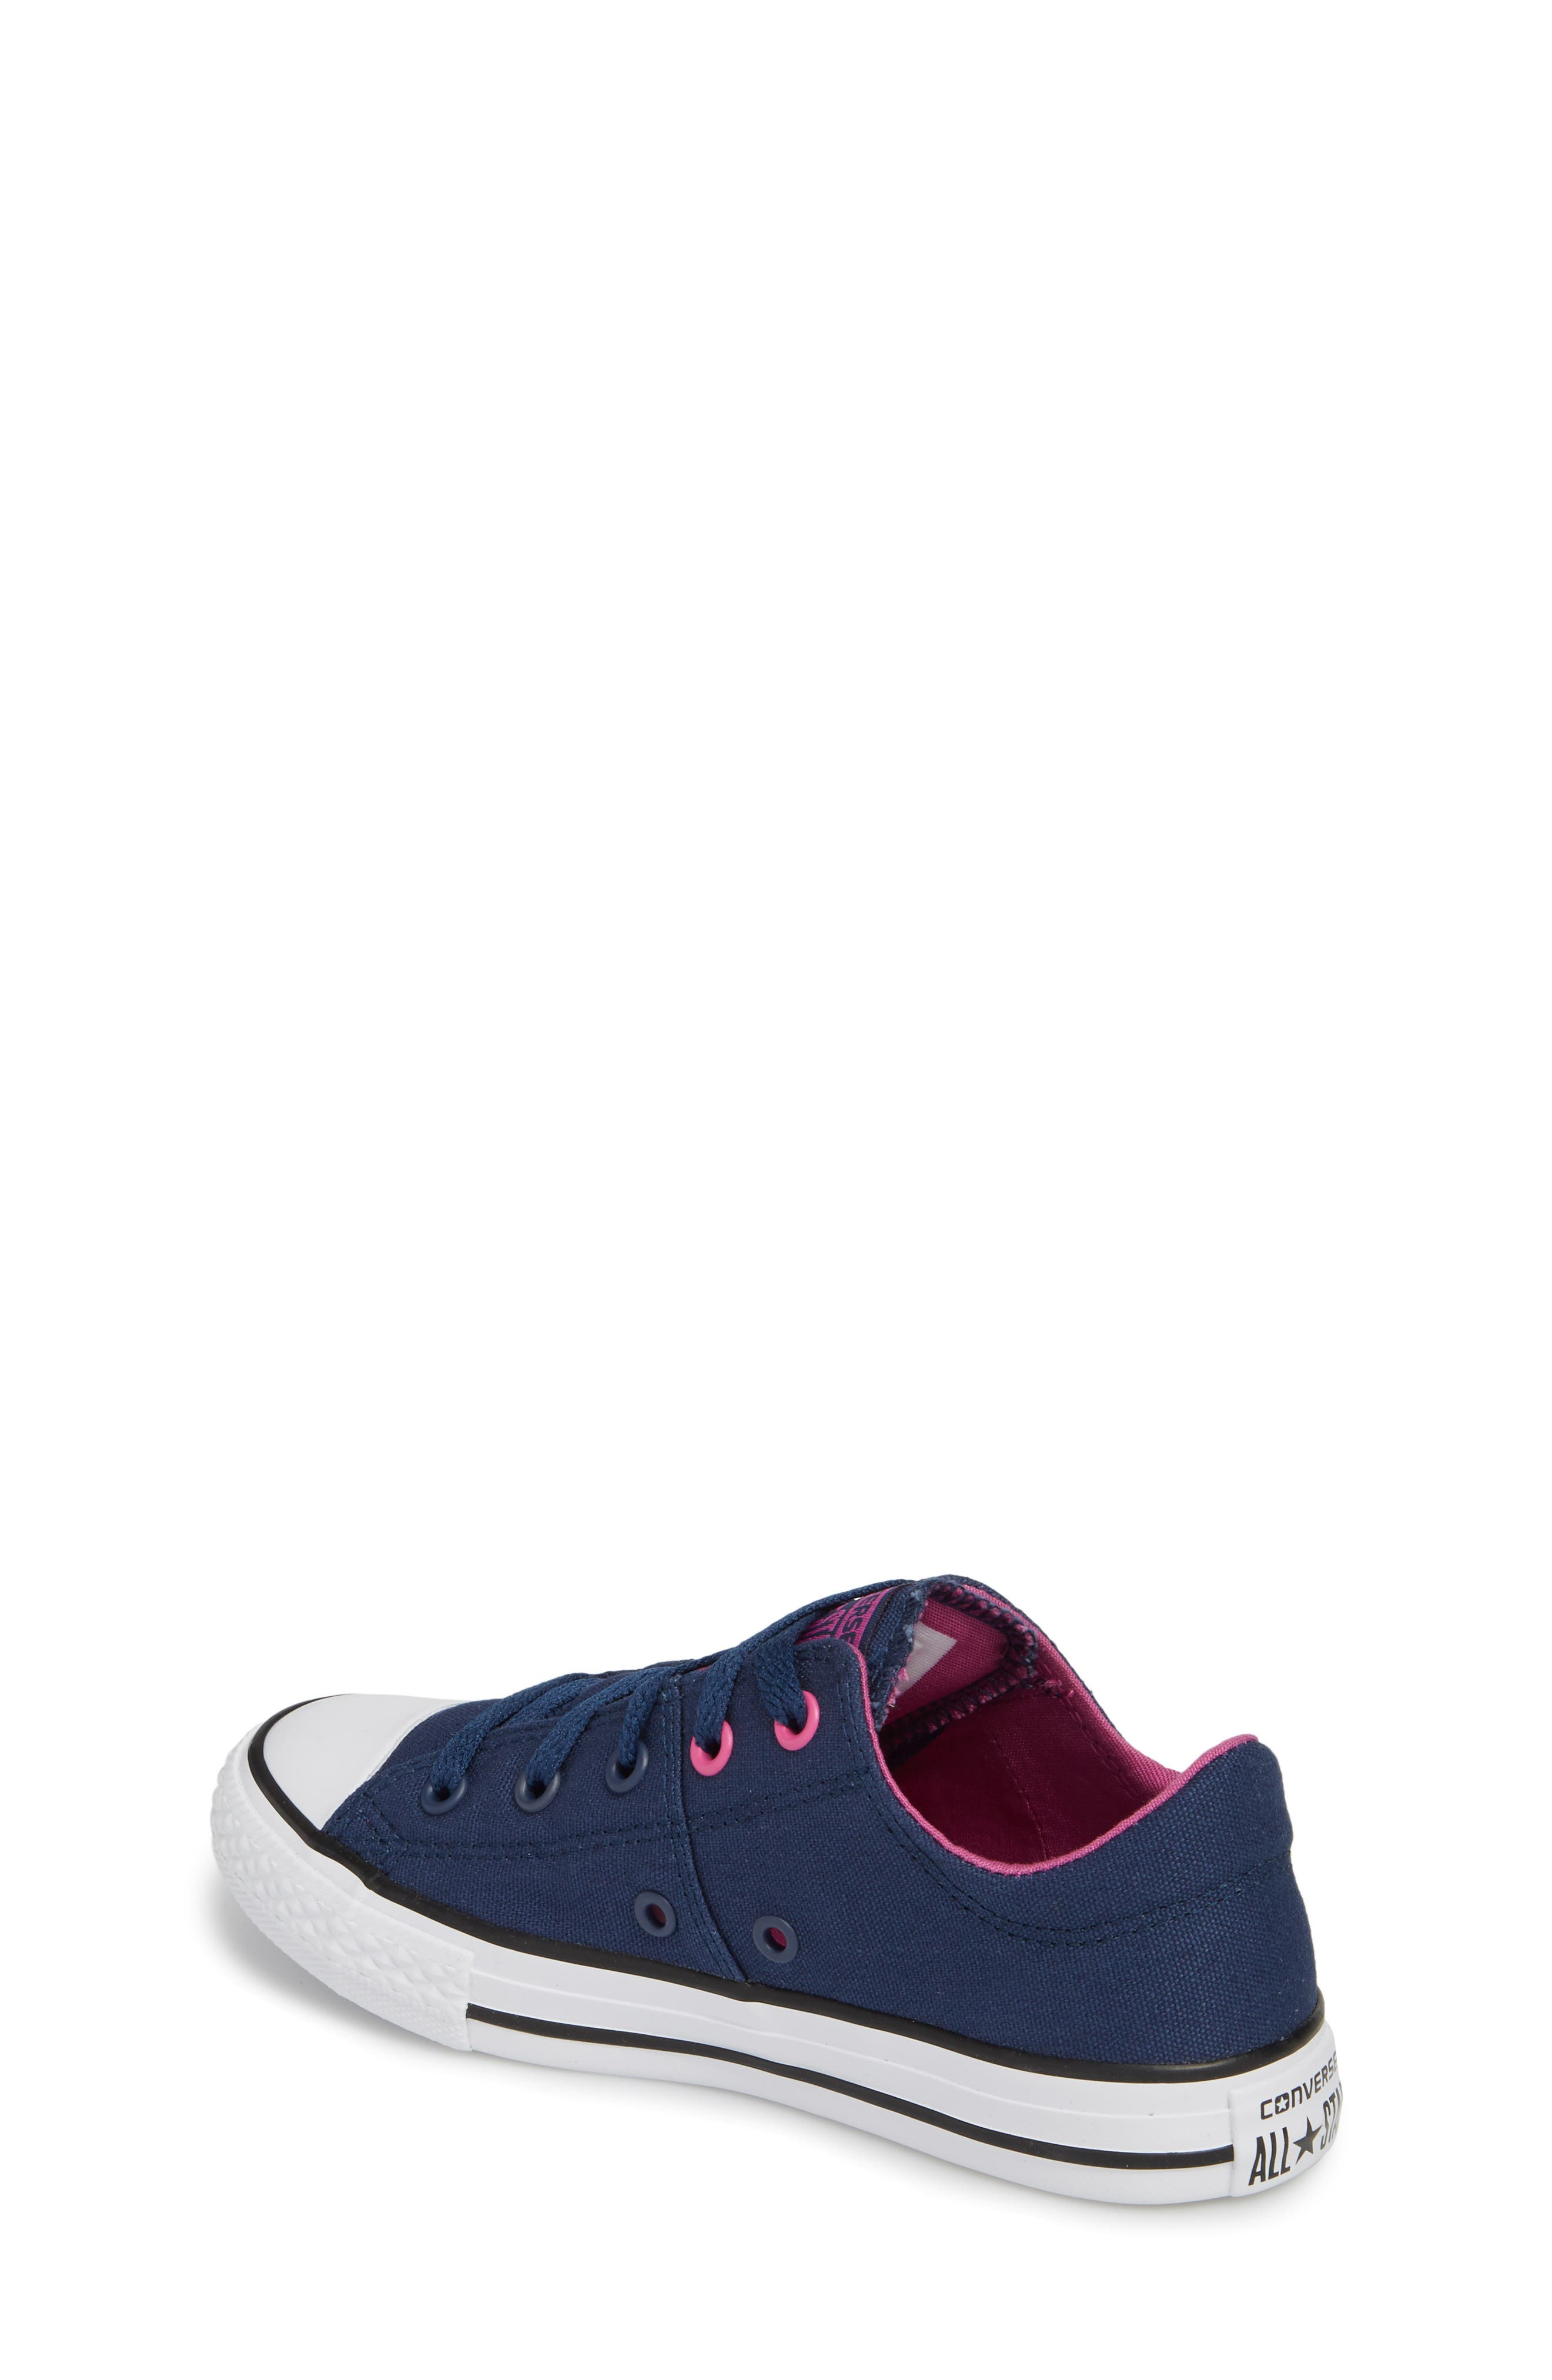 Alternate Image 2  - Converse Chuck Taylor® All Star® Madison Low Top Sneaker (Toddler, Little Kid & Big Kid)